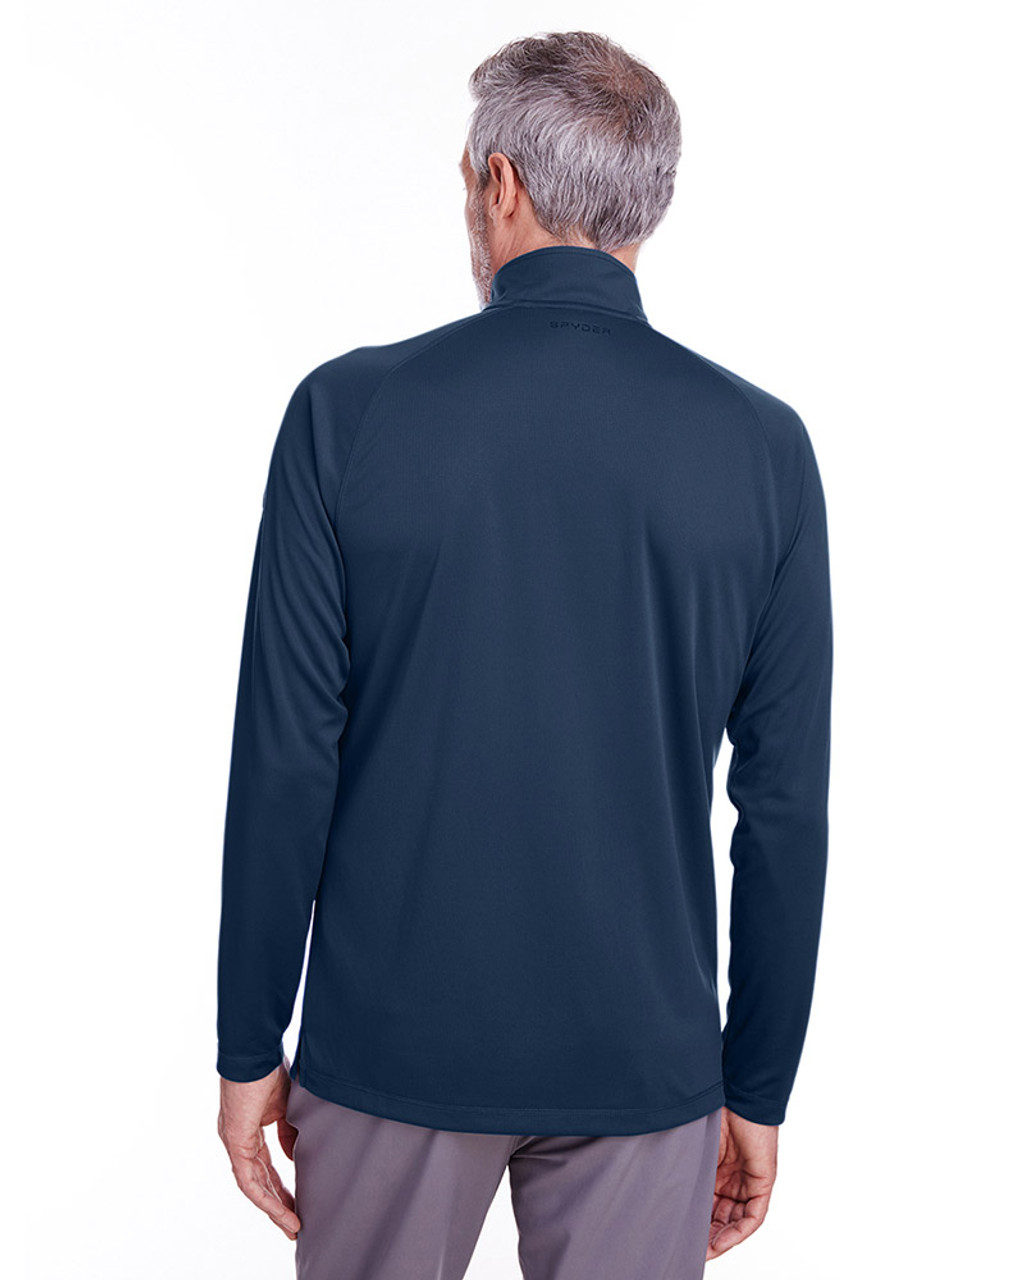 Frontier - back, S16797 Spyder Men's Freestyle Half-Zip Pullover Sweatshirt | Blankclothing.ca